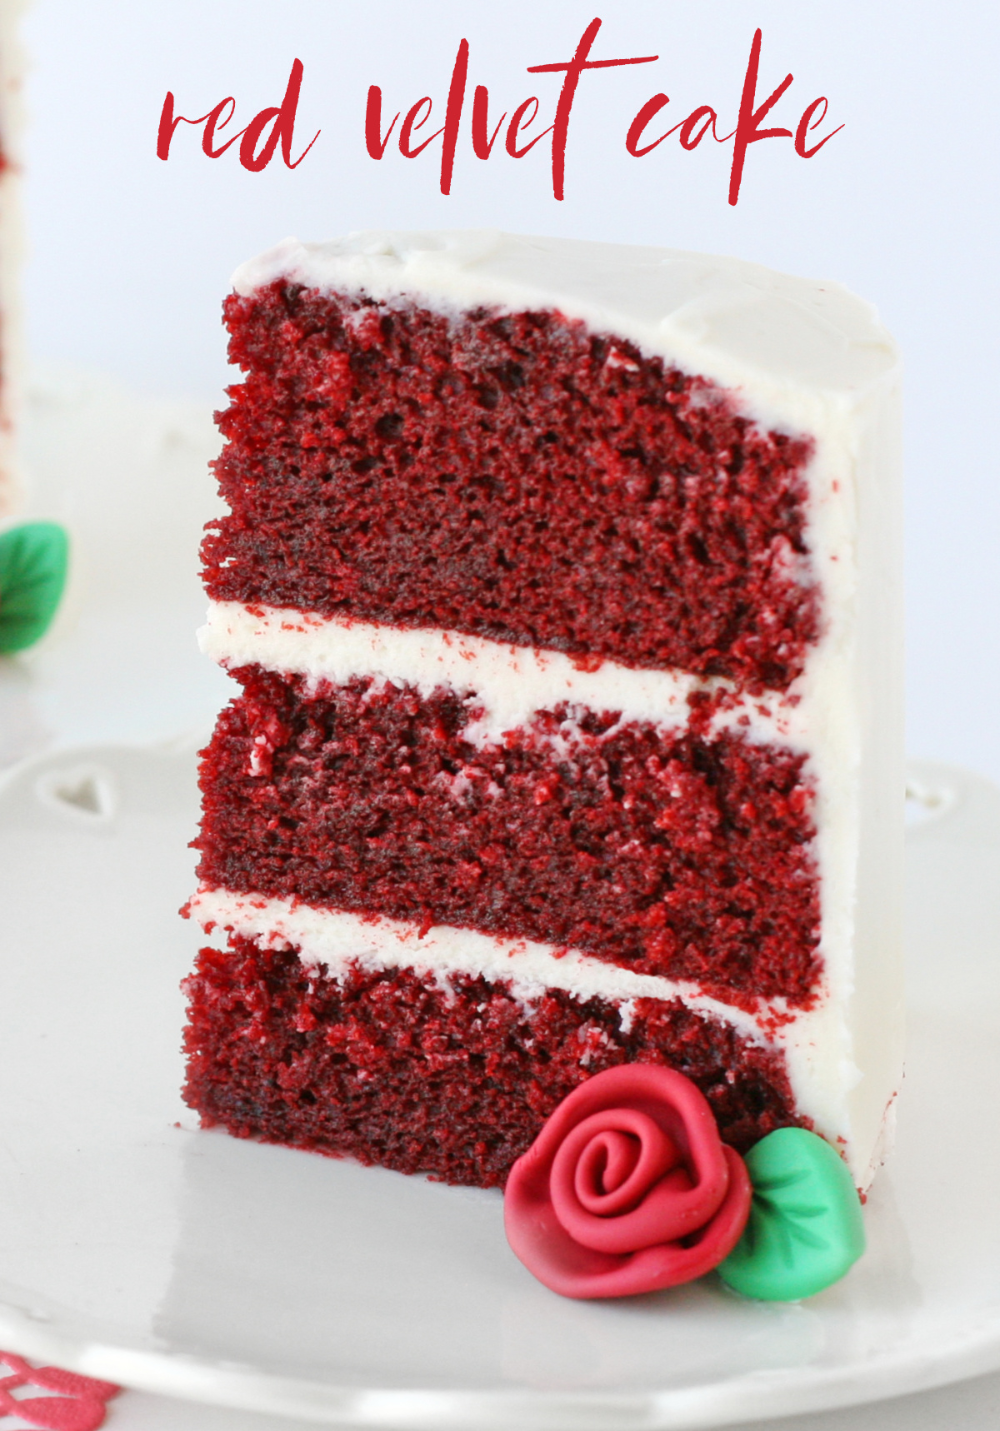 The Most Perfect Red Velvet Cake Finished Off With Decadent Cream Cheese Frosting Is The Ideal Cake In 2020 Velvet Cake Recipes Red Velvet Cake Recipe Red Velvet Cake